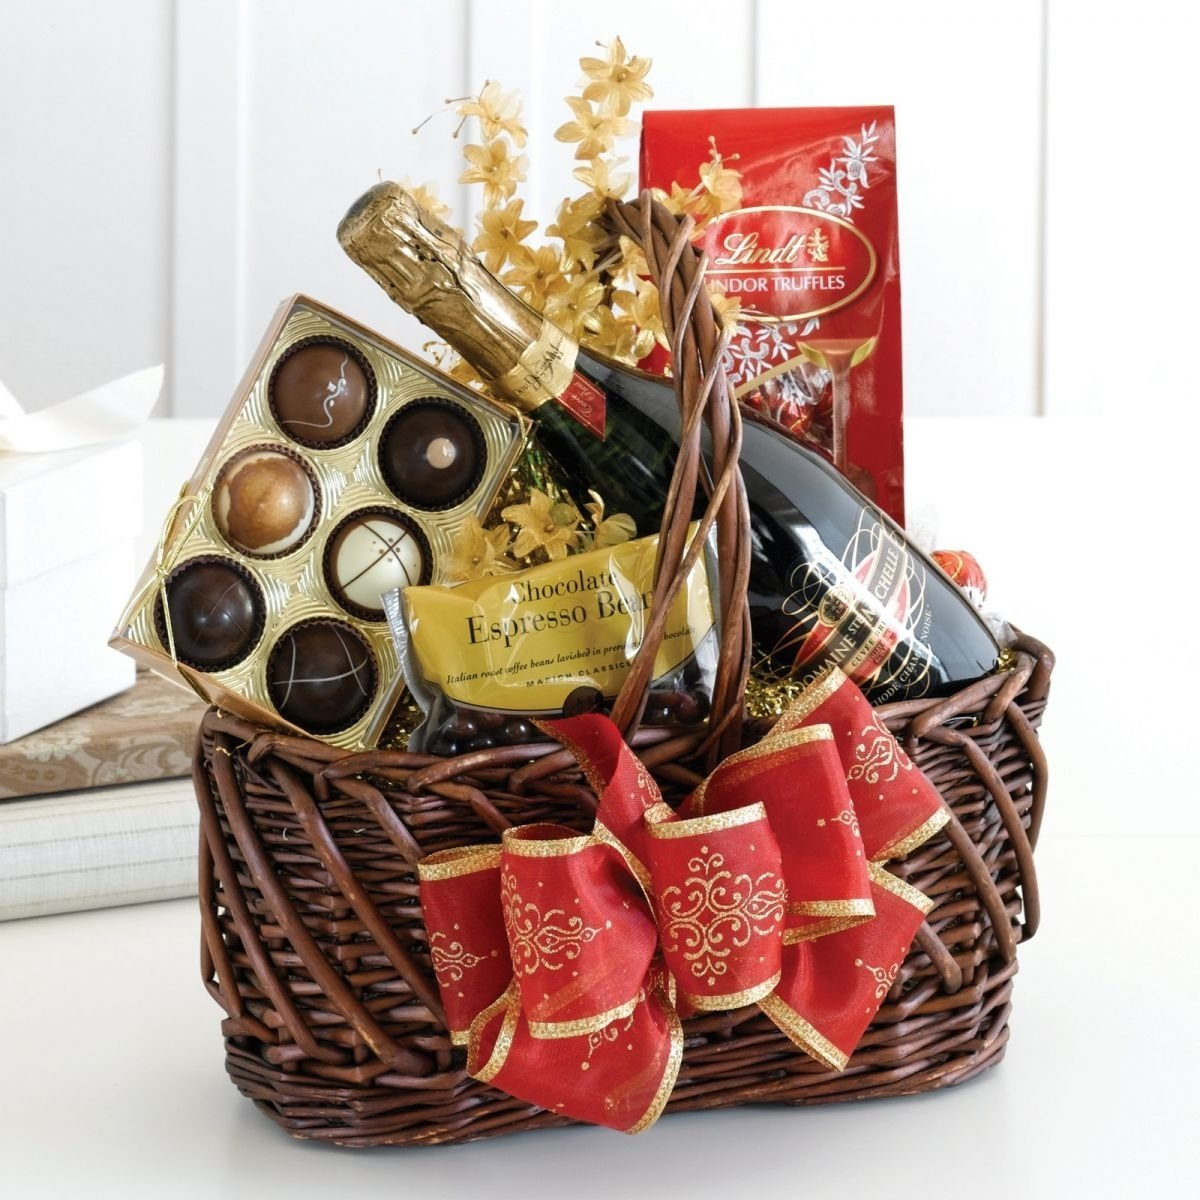 10 Fantastic Make Your Own Gift Basket Ideas top 5 amazing gift basket ideas that youll love cool picking 2021